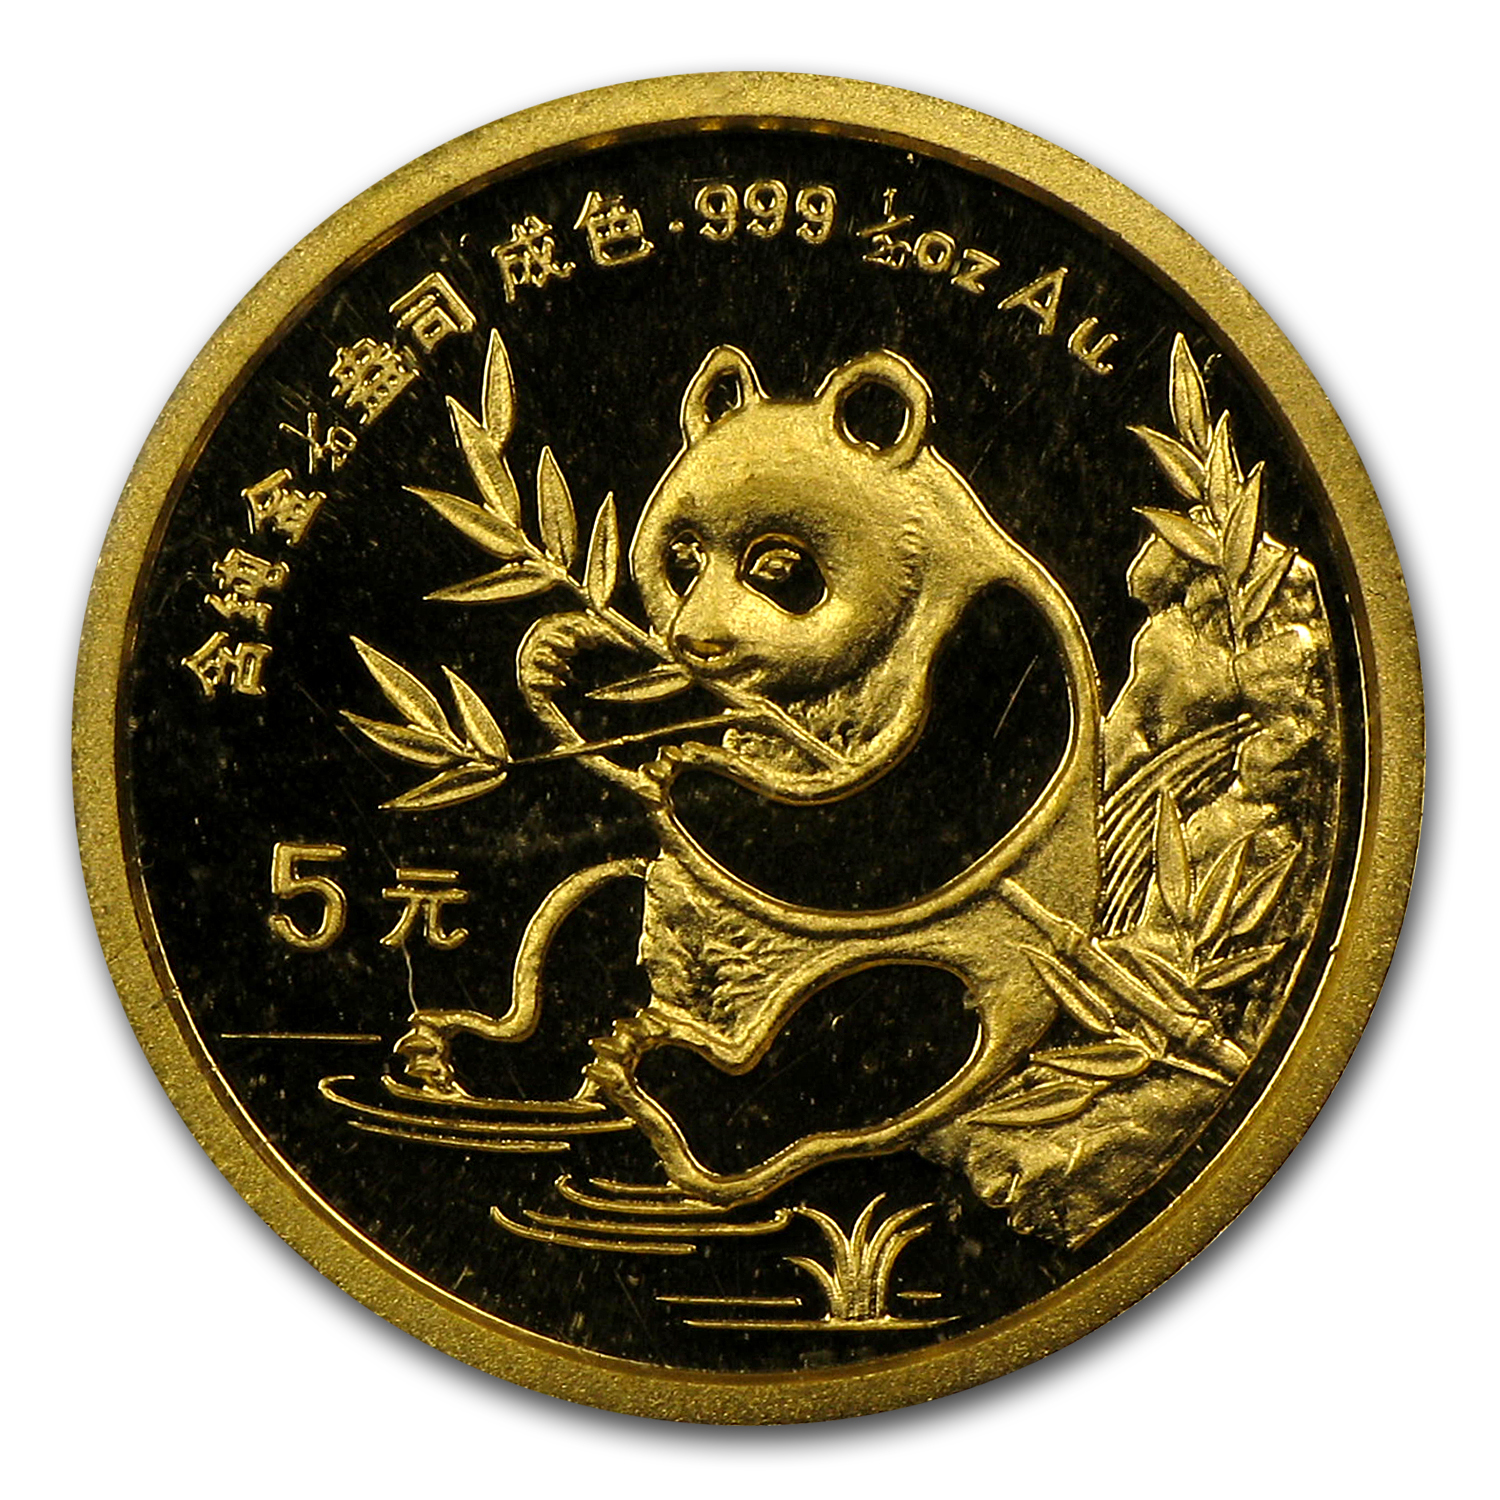 1991 (1/20 oz) Gold Chinese Pandas - Small Date (Sealed)